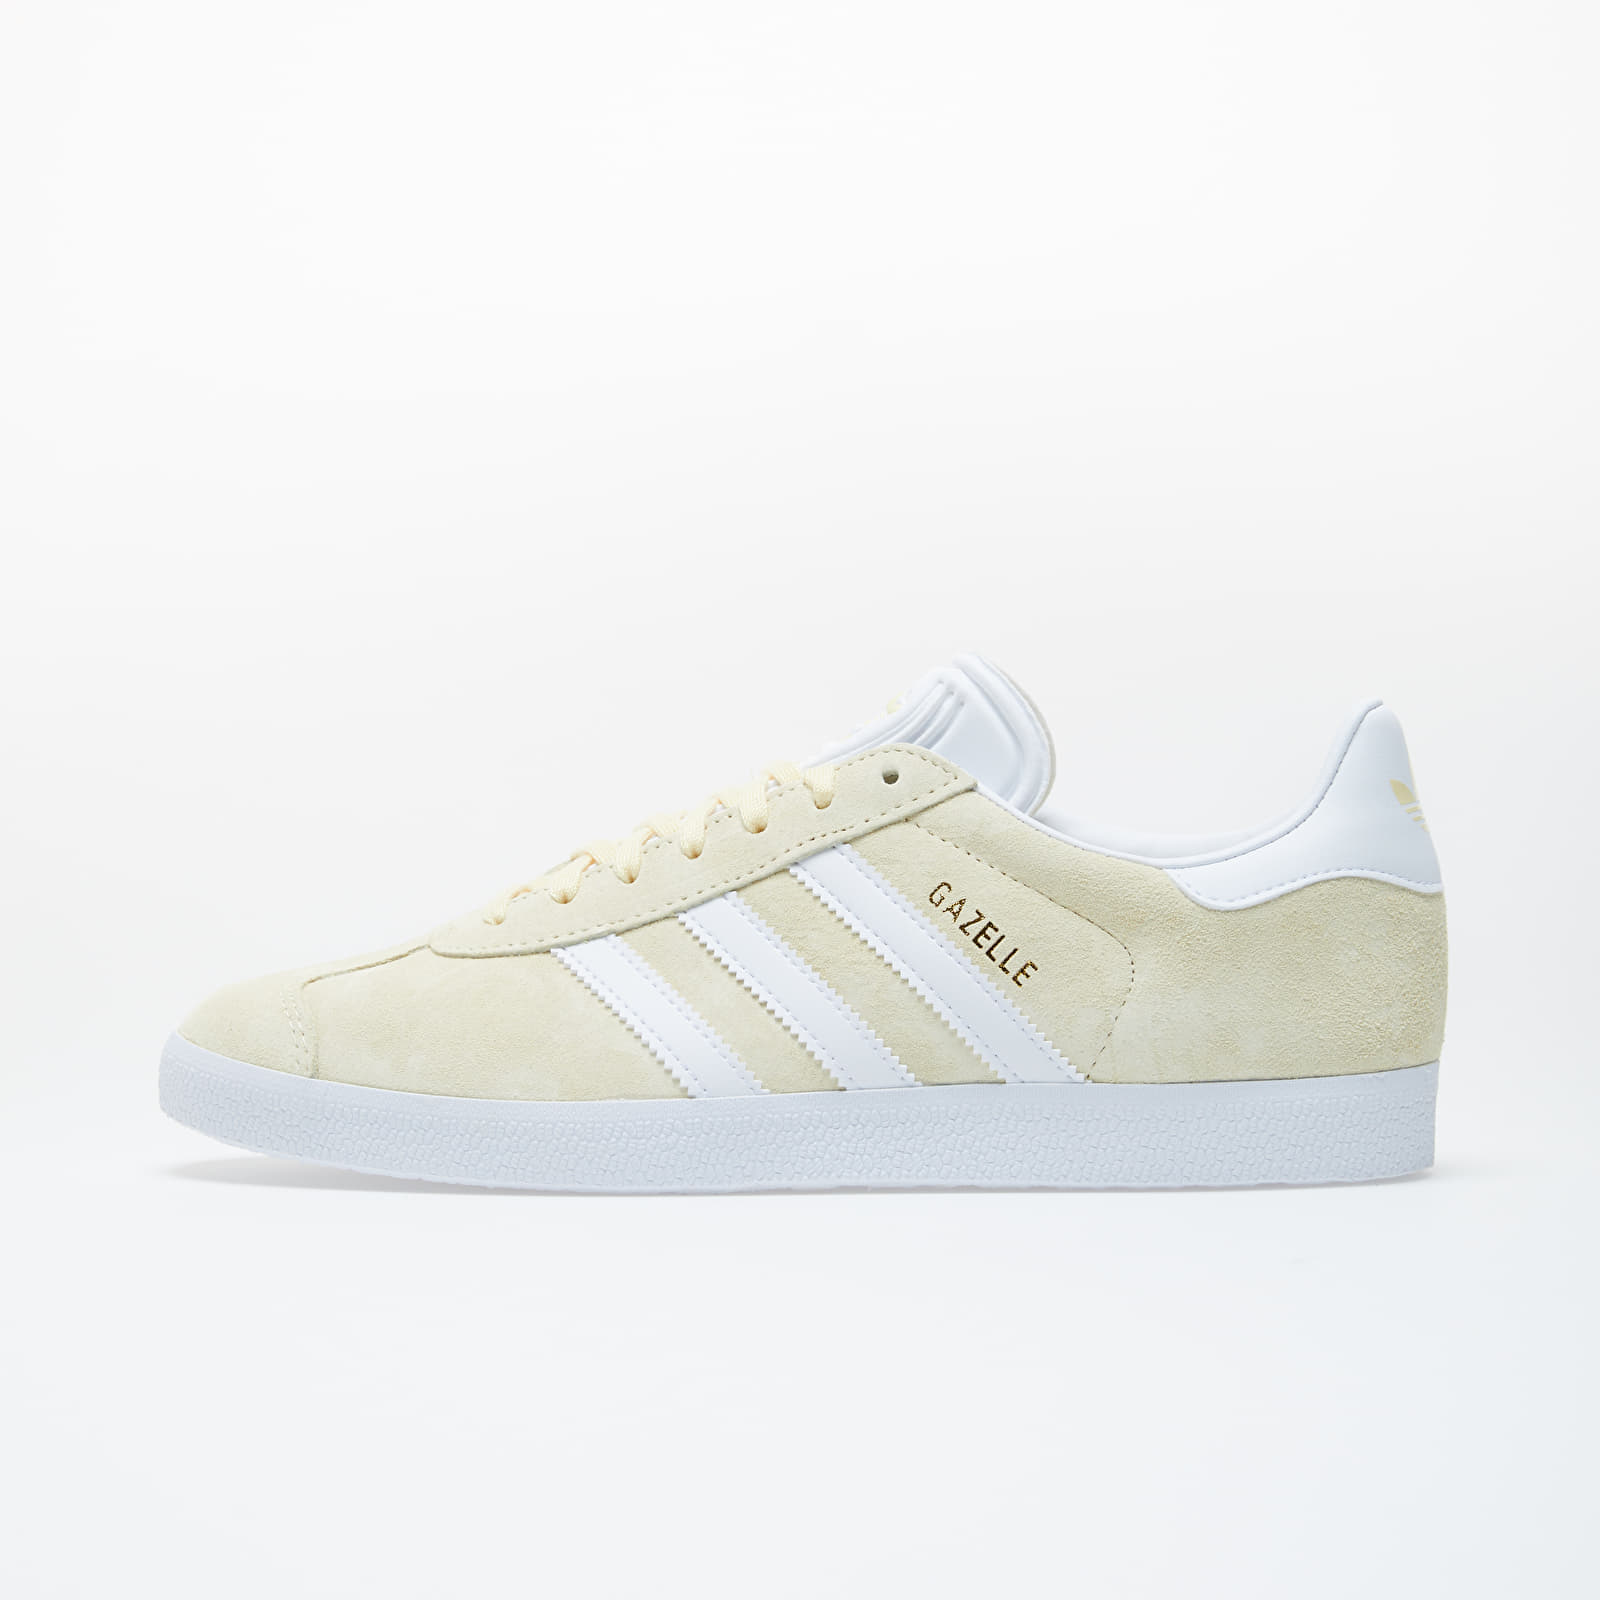 Muške tenisice adidas Gazelle Easy Yellow/ Ftw White/ Gold Metalic